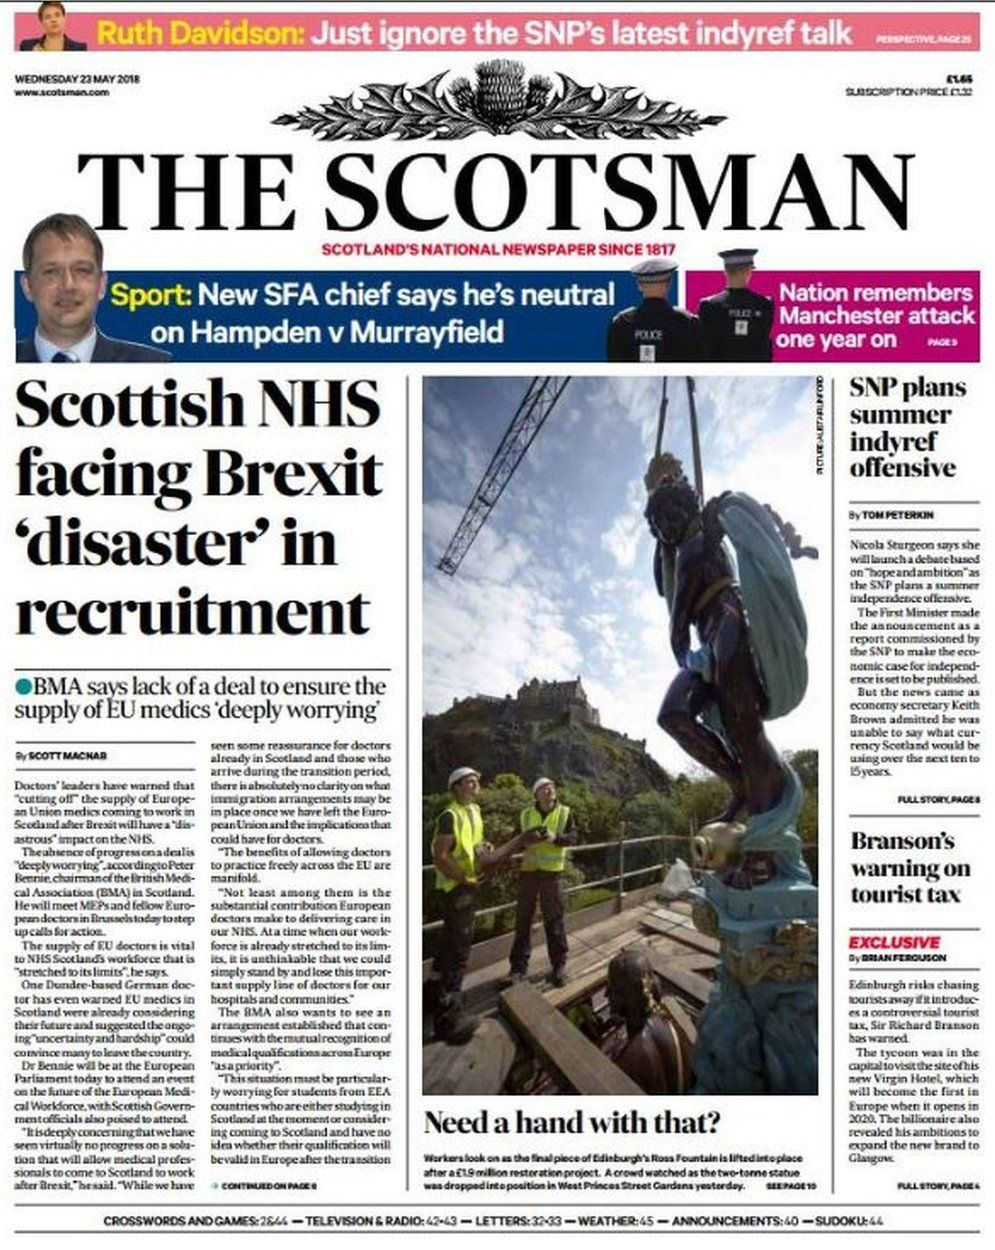 Scotland's papers: Over 65s 'forced' to work on - BBC News